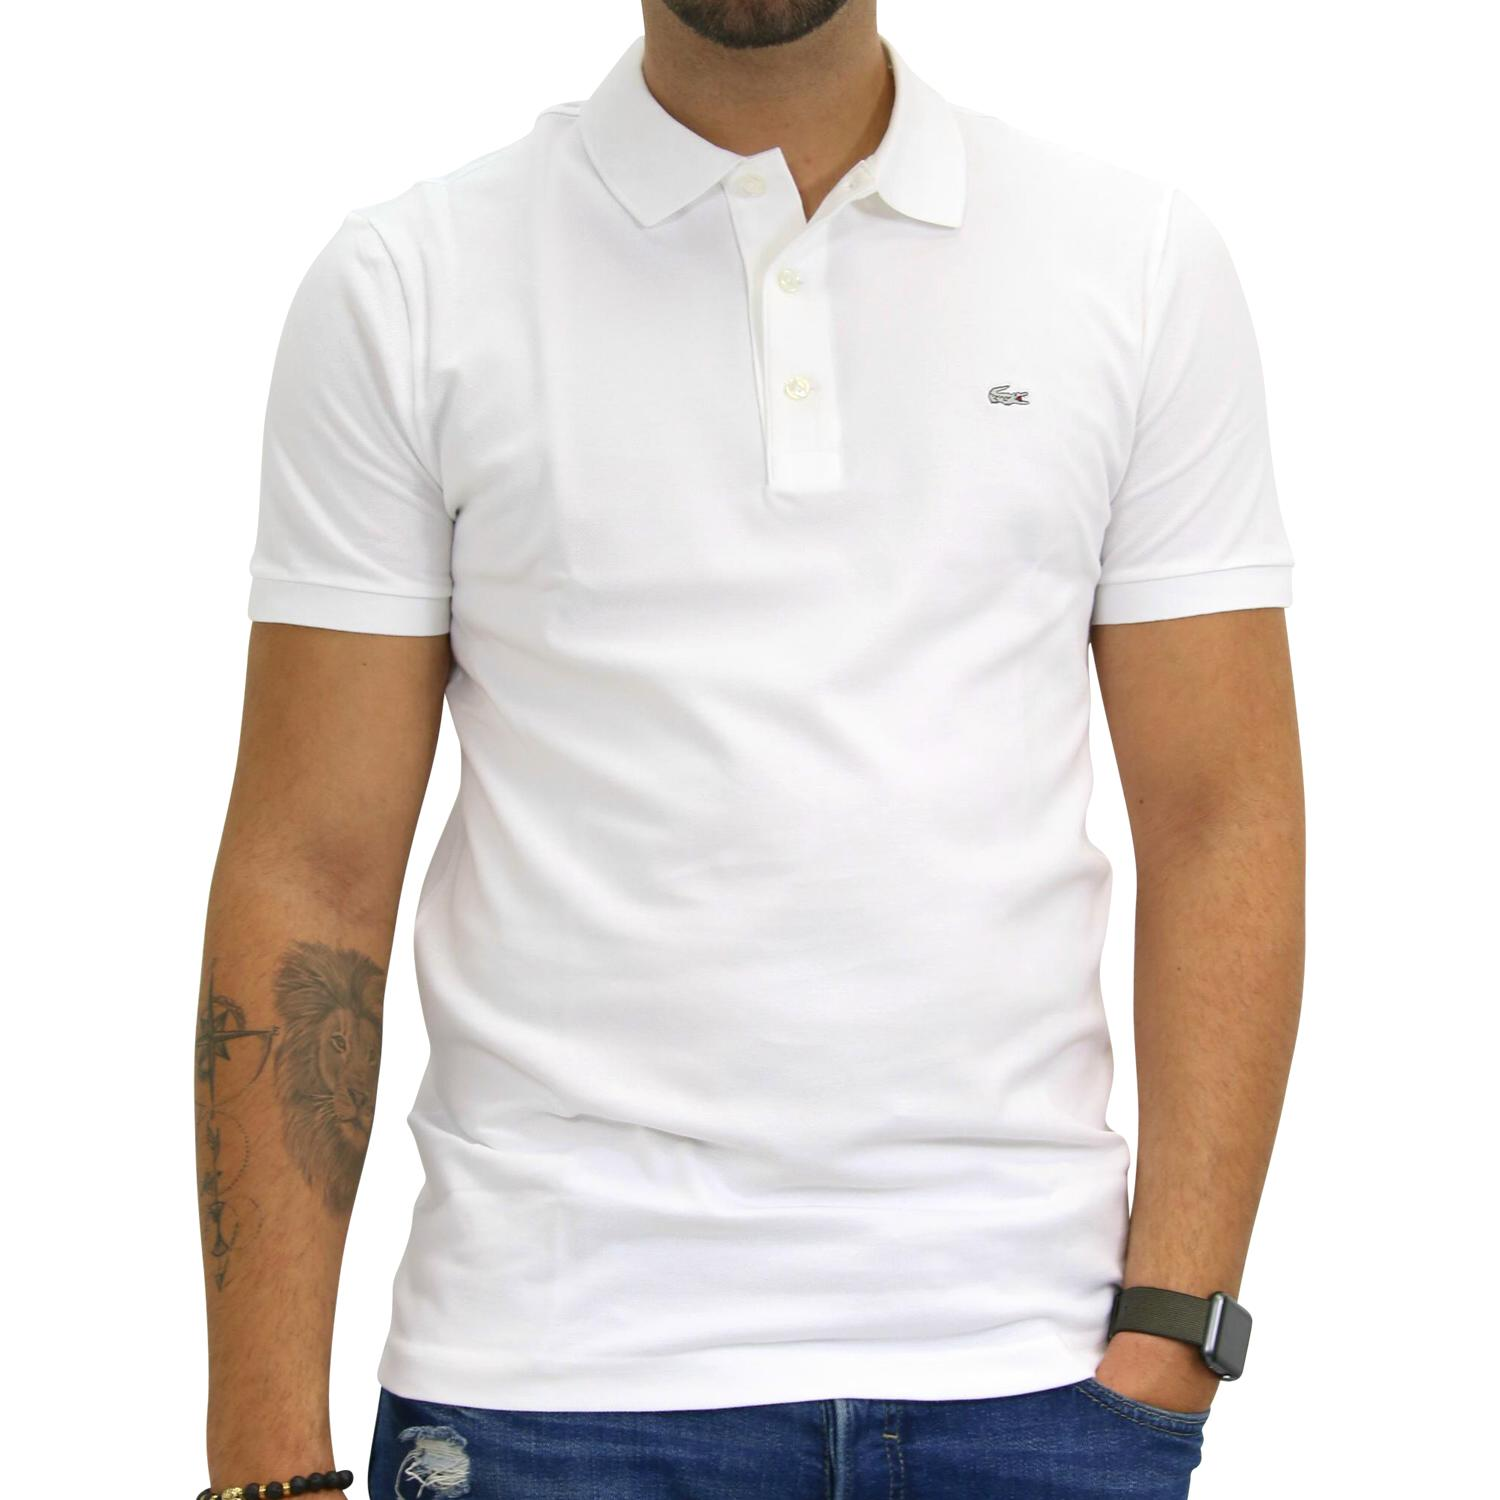 lacoste polo slim fit stretch poloshirt polohemd t shirt kurzarm herren ph4014 ebay. Black Bedroom Furniture Sets. Home Design Ideas